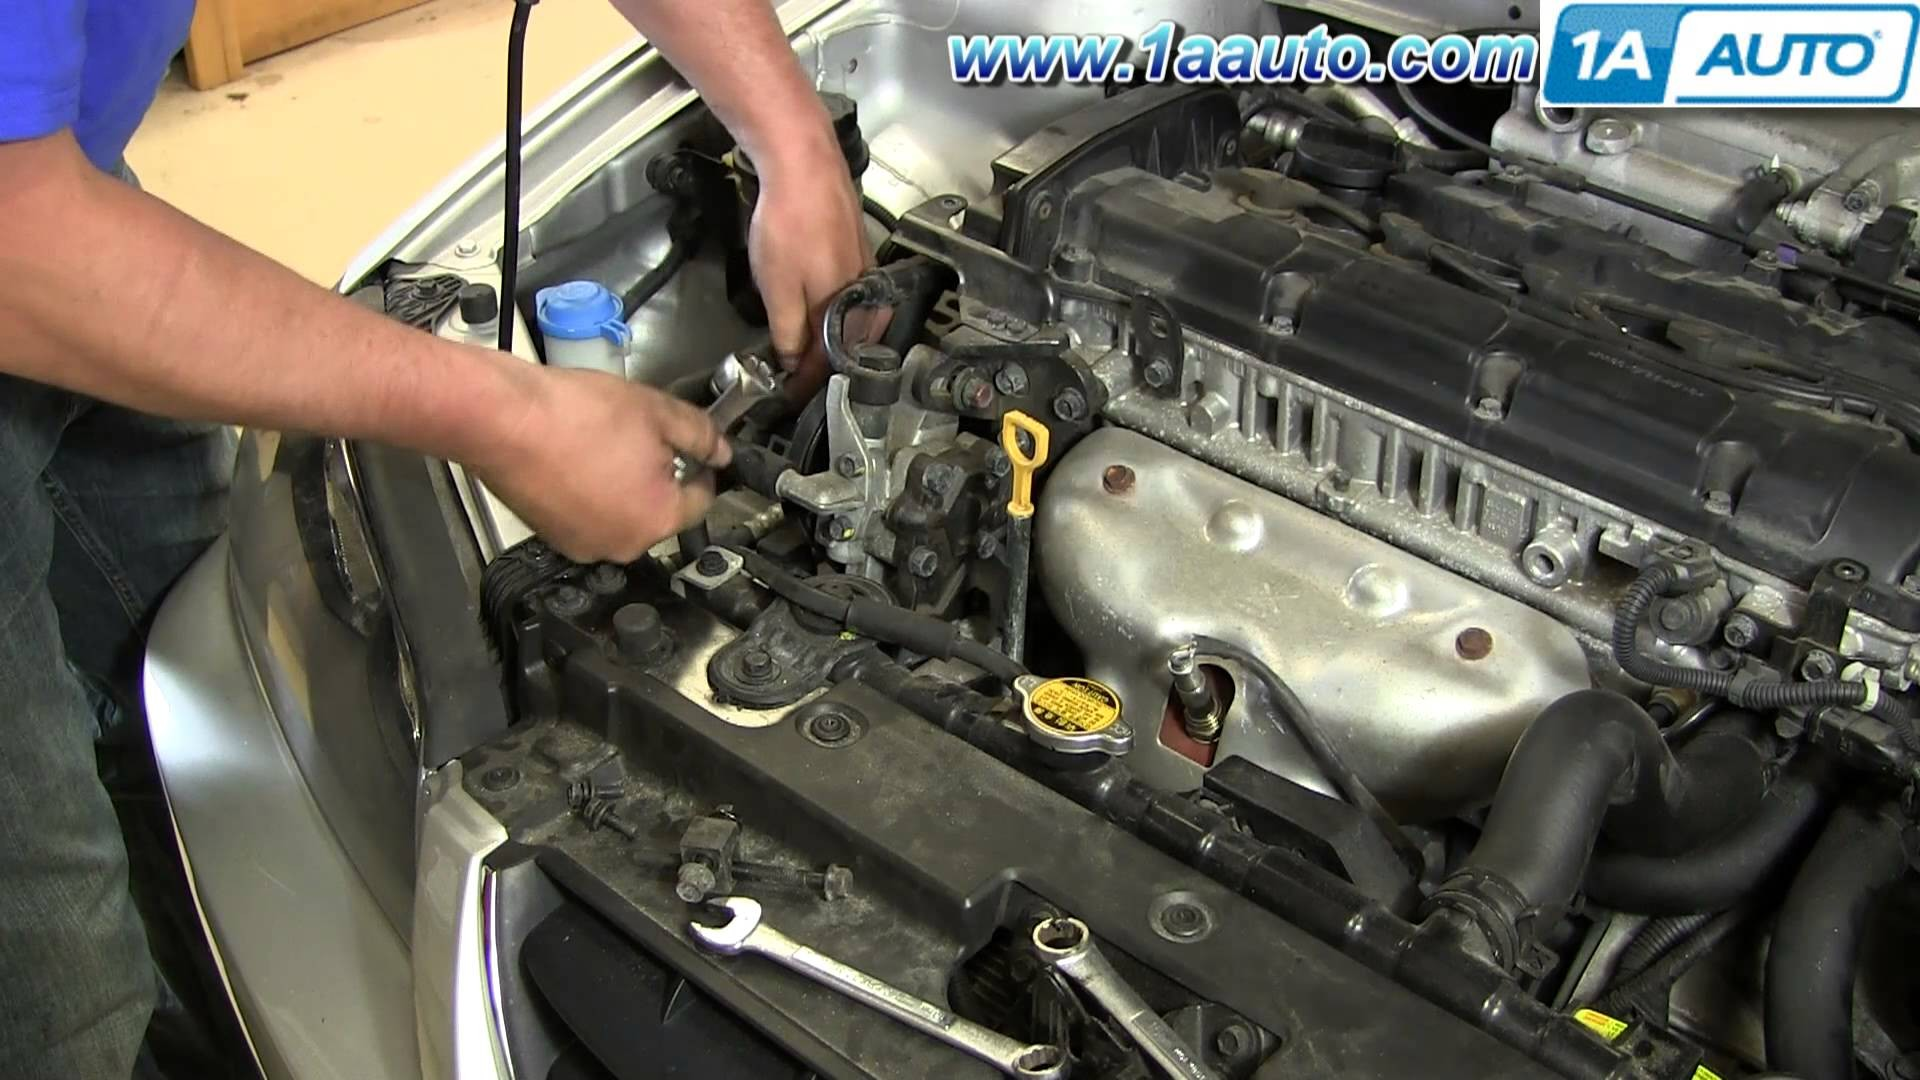 2003 Hyundai Elantra Engine Diagram How to Install Replace Power Steering Belt 2001 06 Hyundai Elantra Of 2003 Hyundai Elantra Engine Diagram